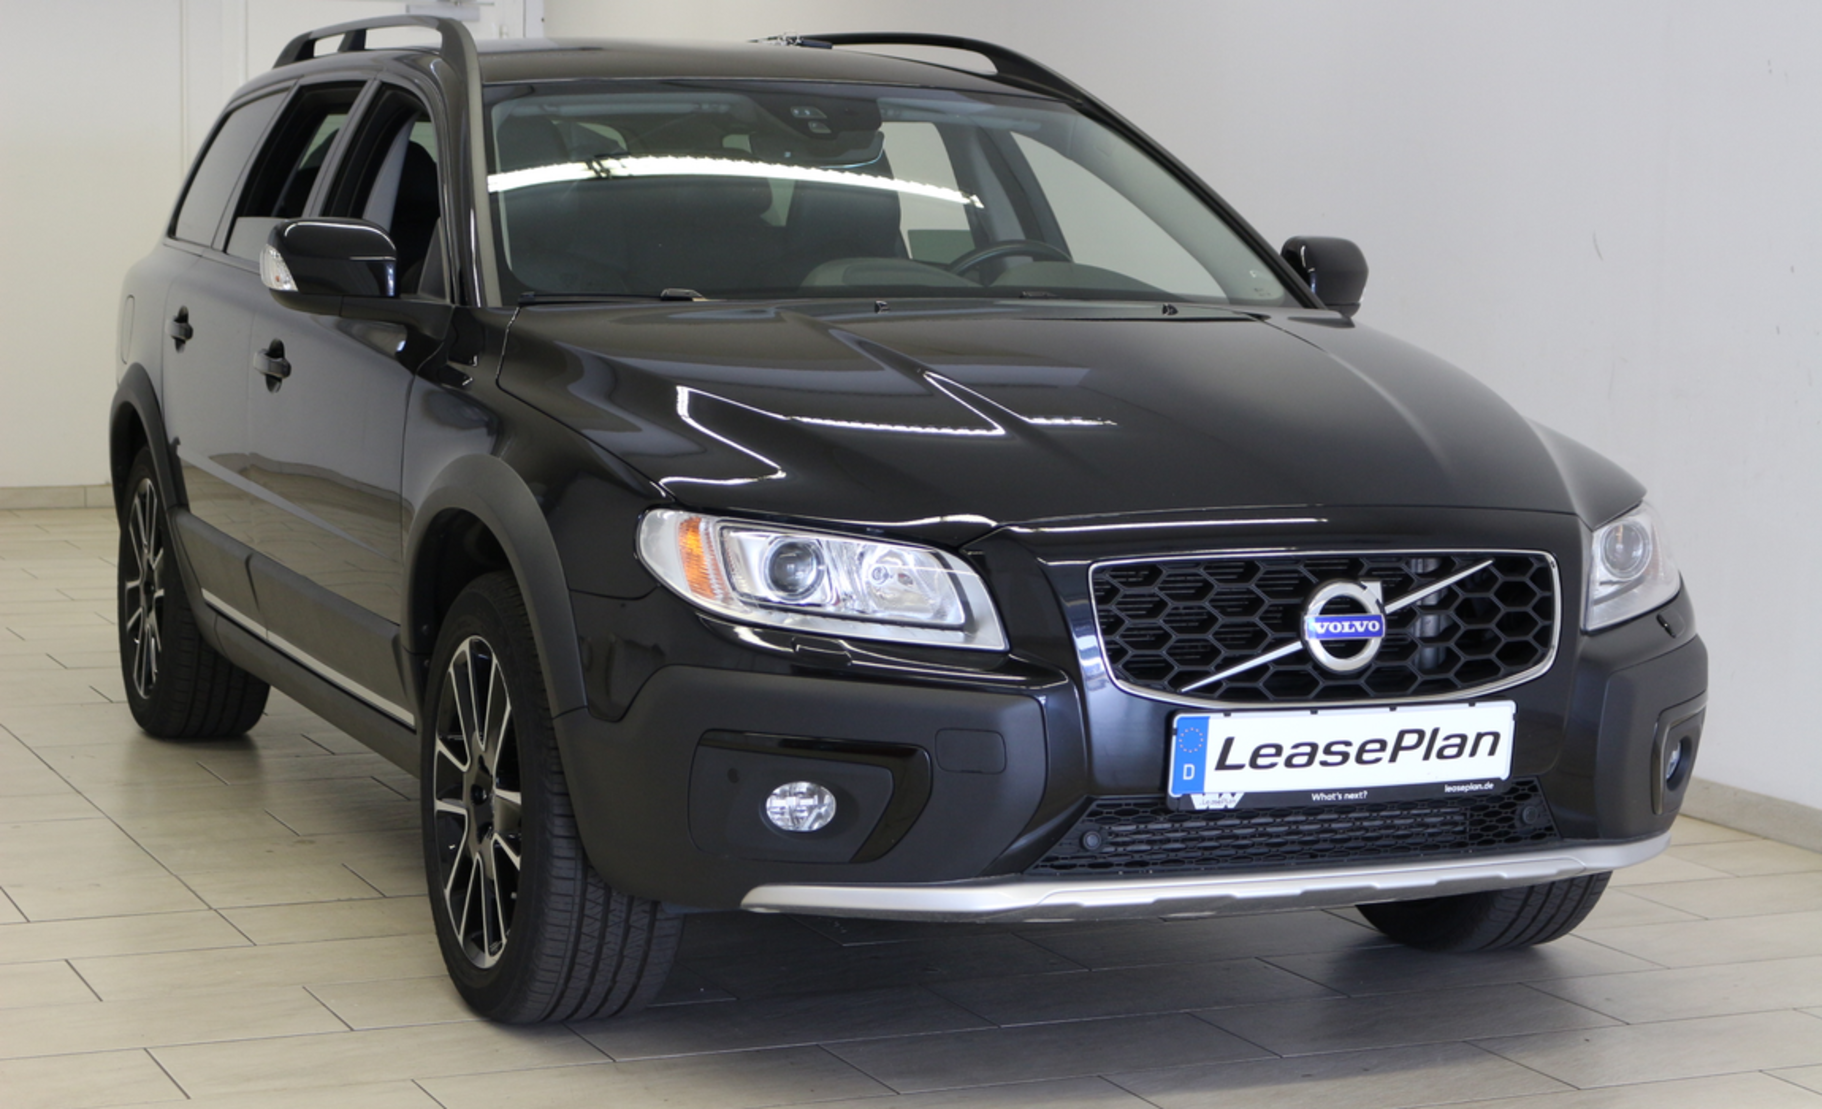 Volvo XC70 D5 AWD Geartronic Black Edition (563295) detail1